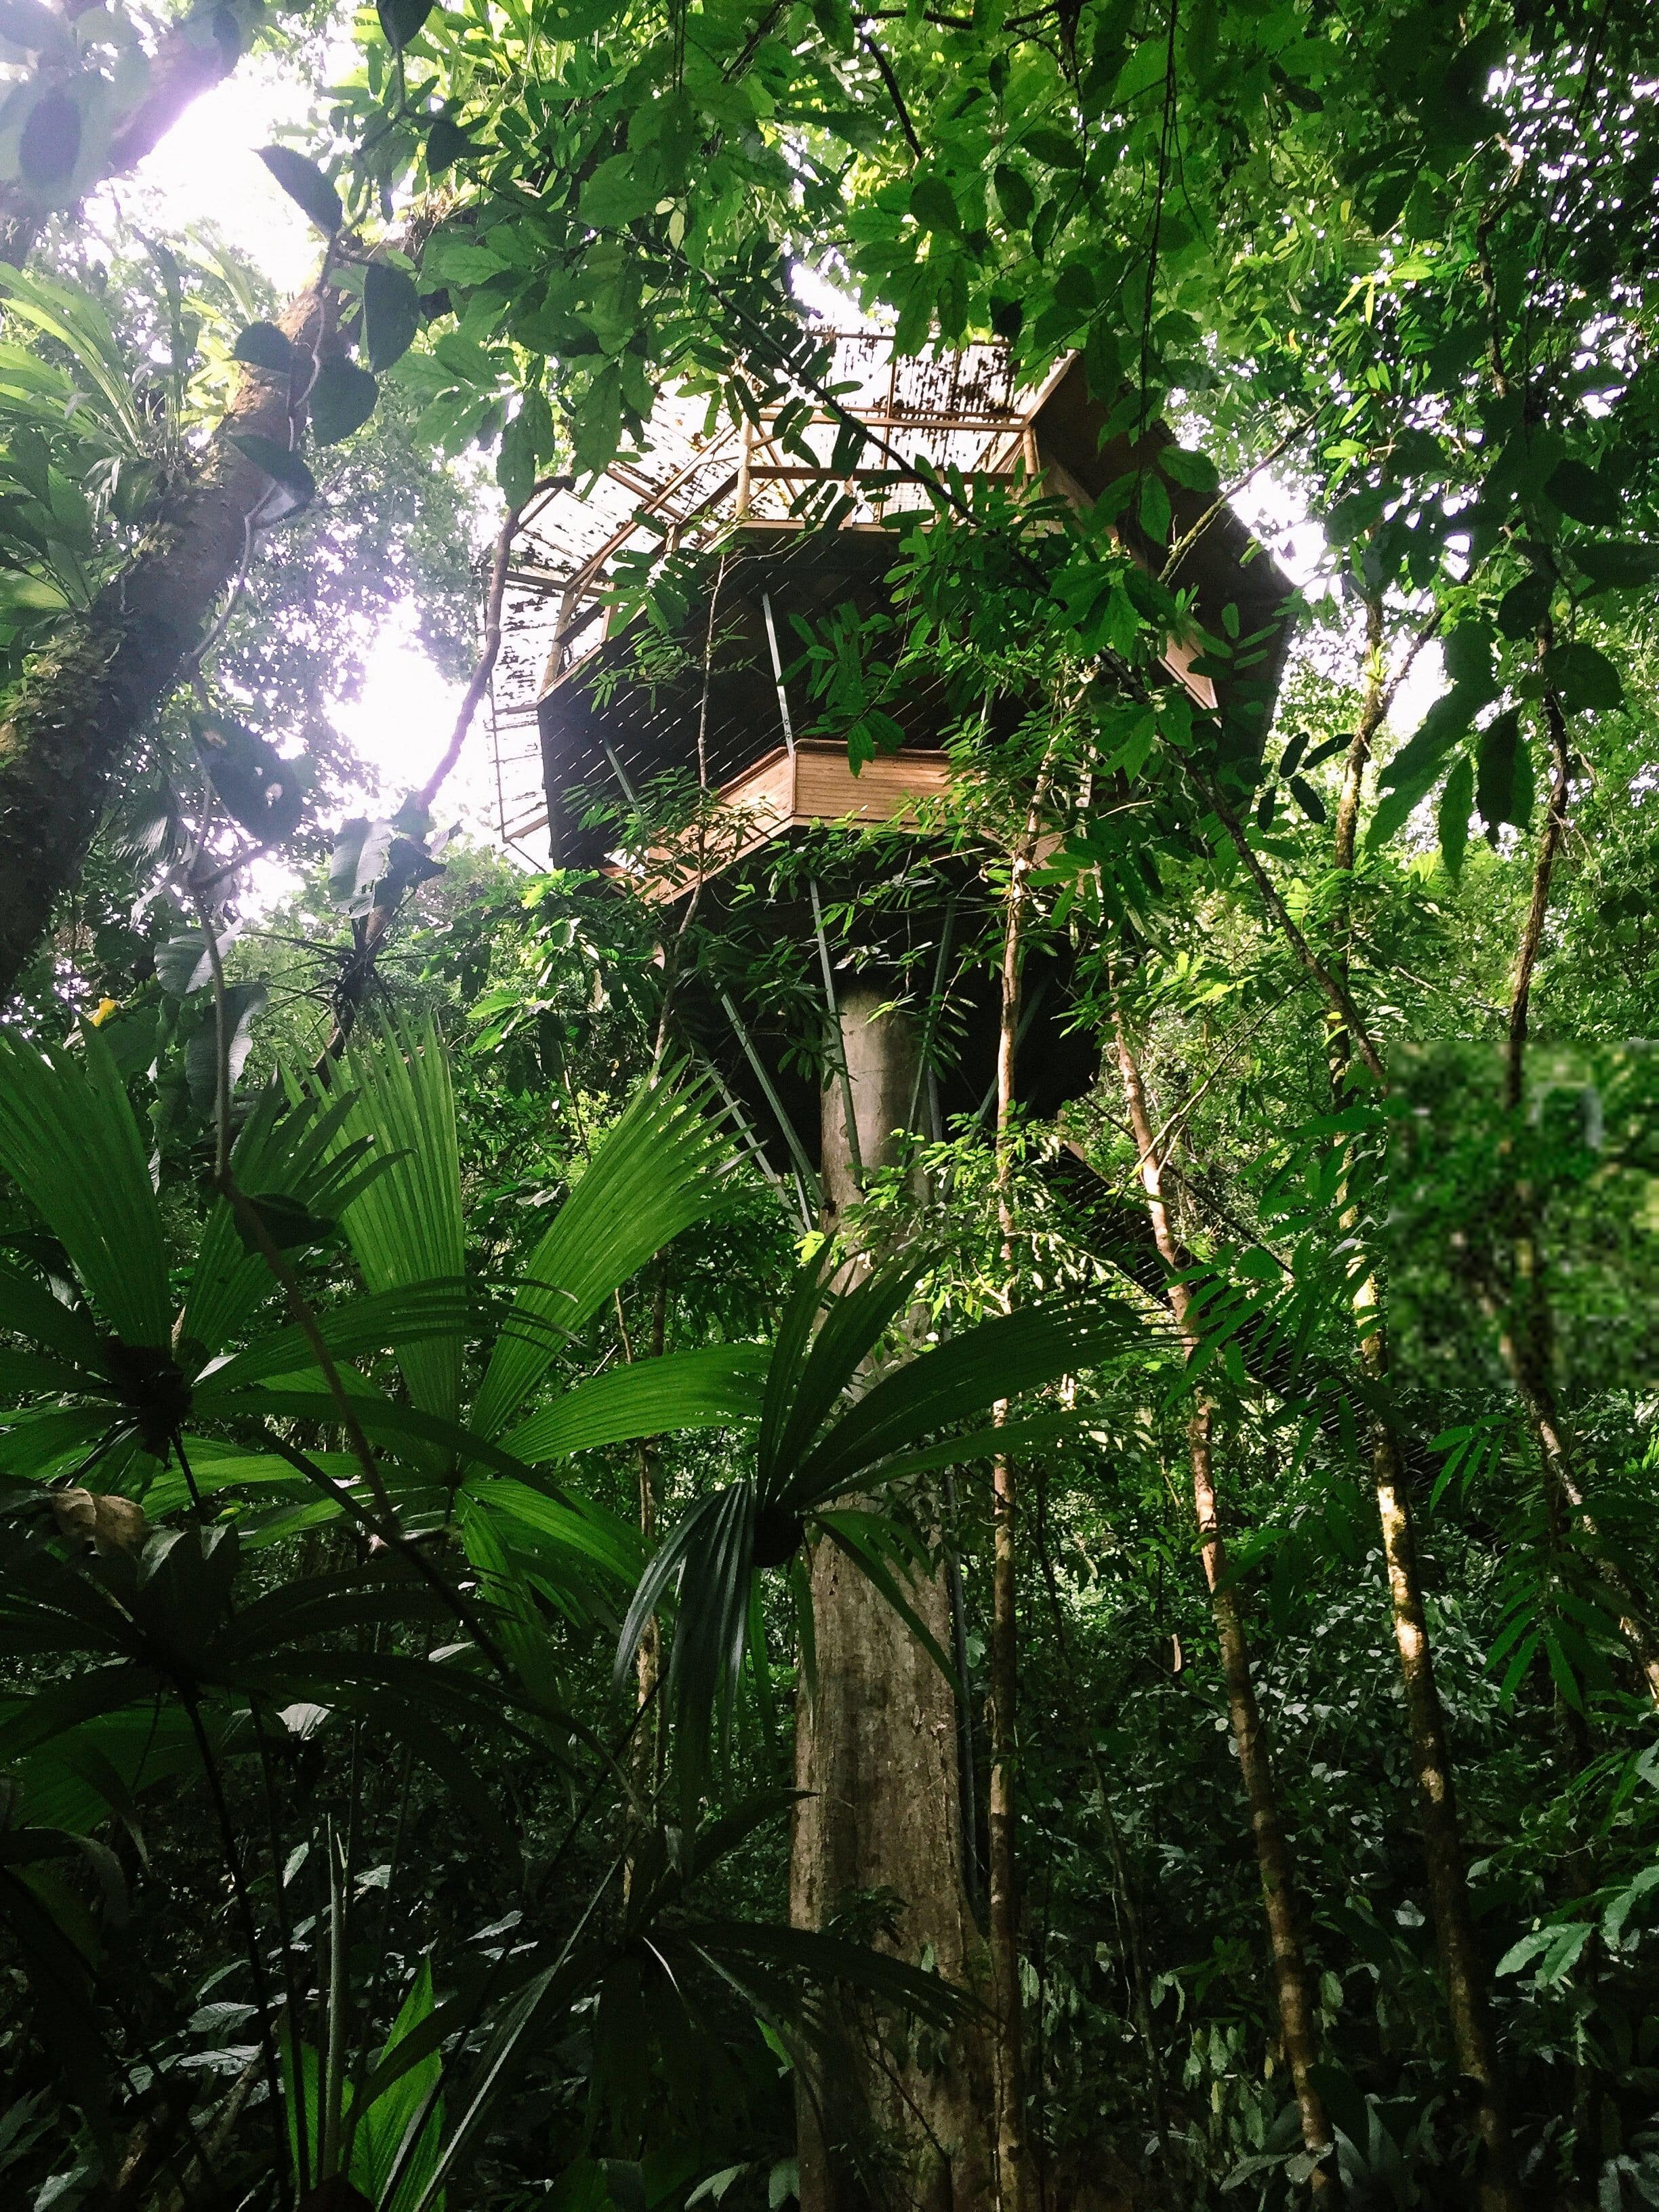 90 Ft High Treehouse Utopia Travel Blog Cirqueling The